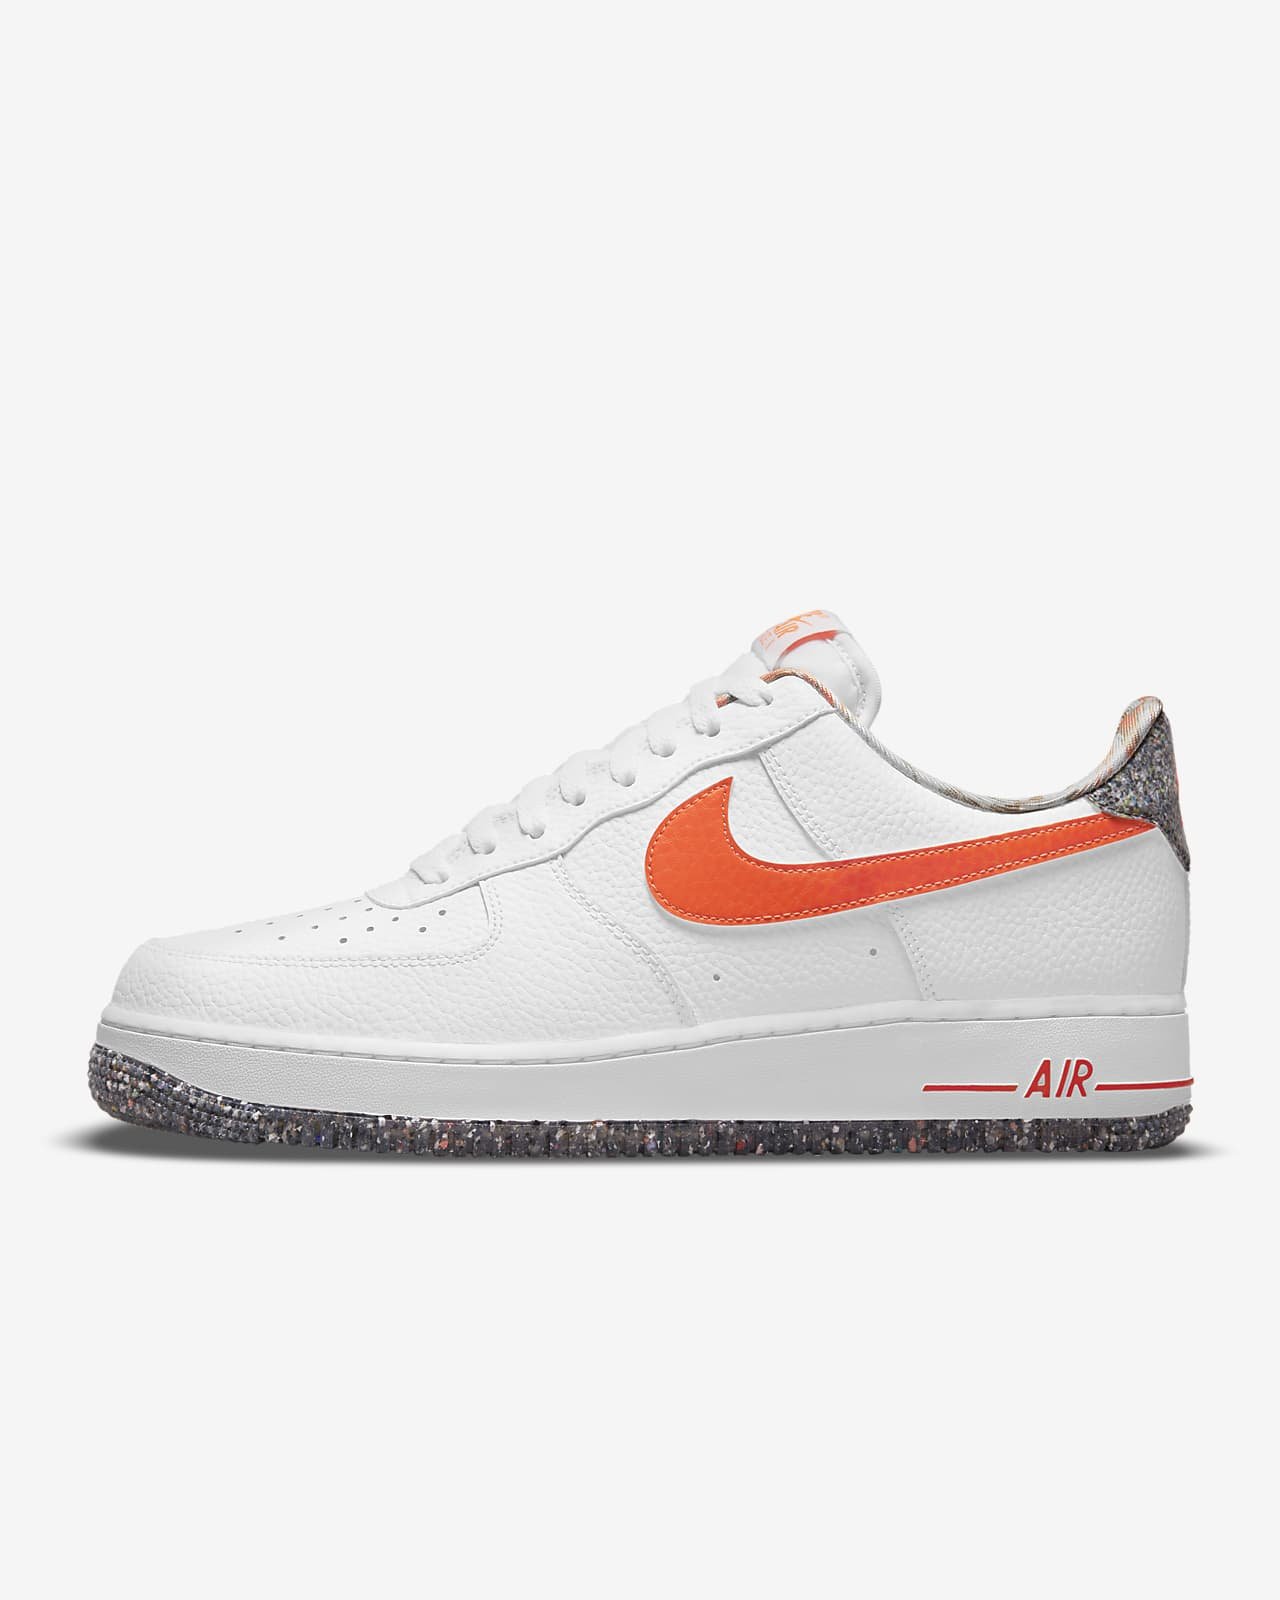 Chaussure Nike Air Force 1 pour Homme. Nike LU